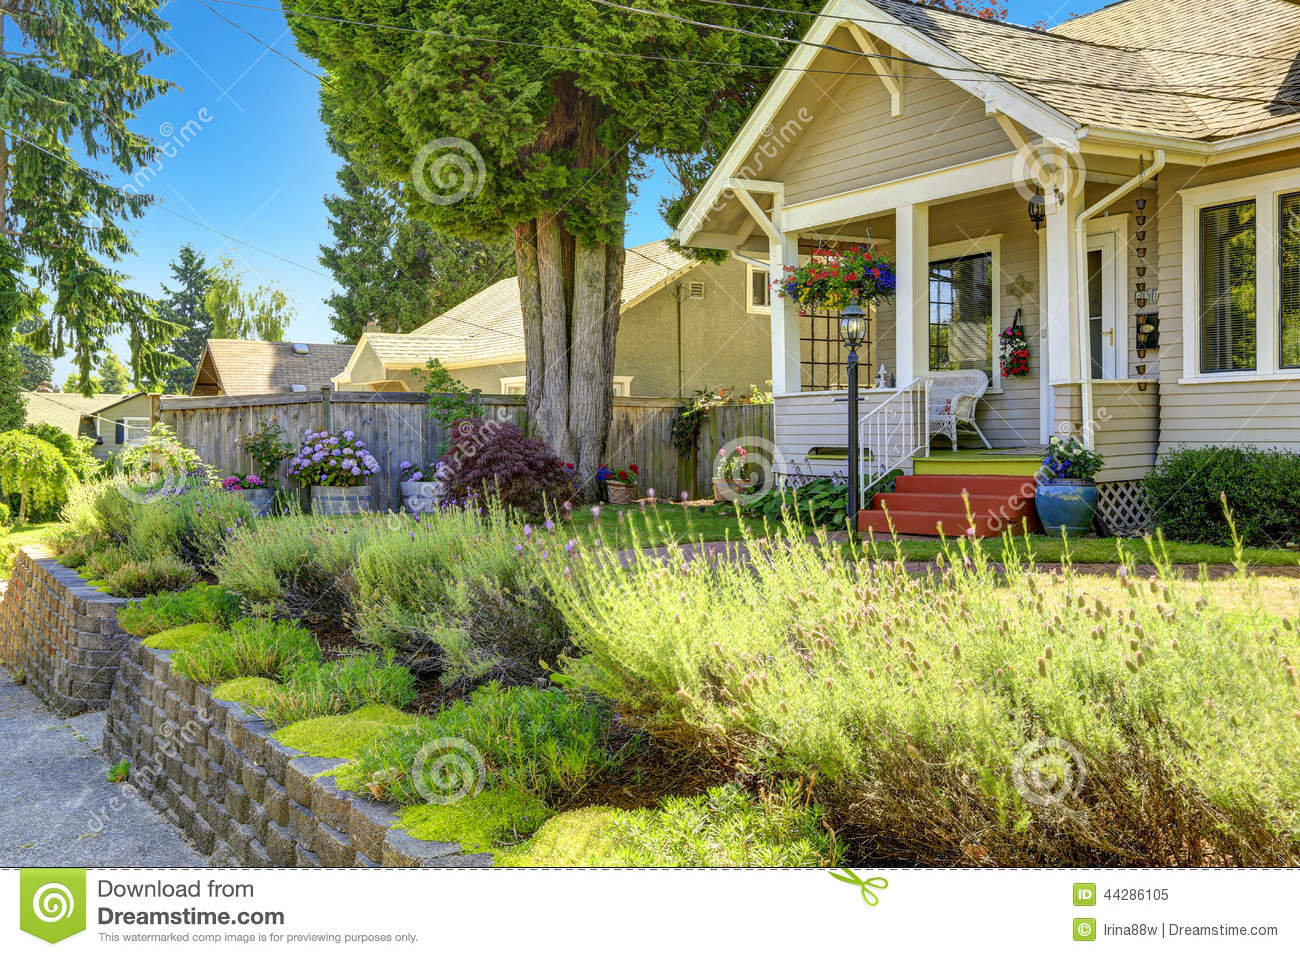 Classic american house exterior with landscape stock photo for Classic american house